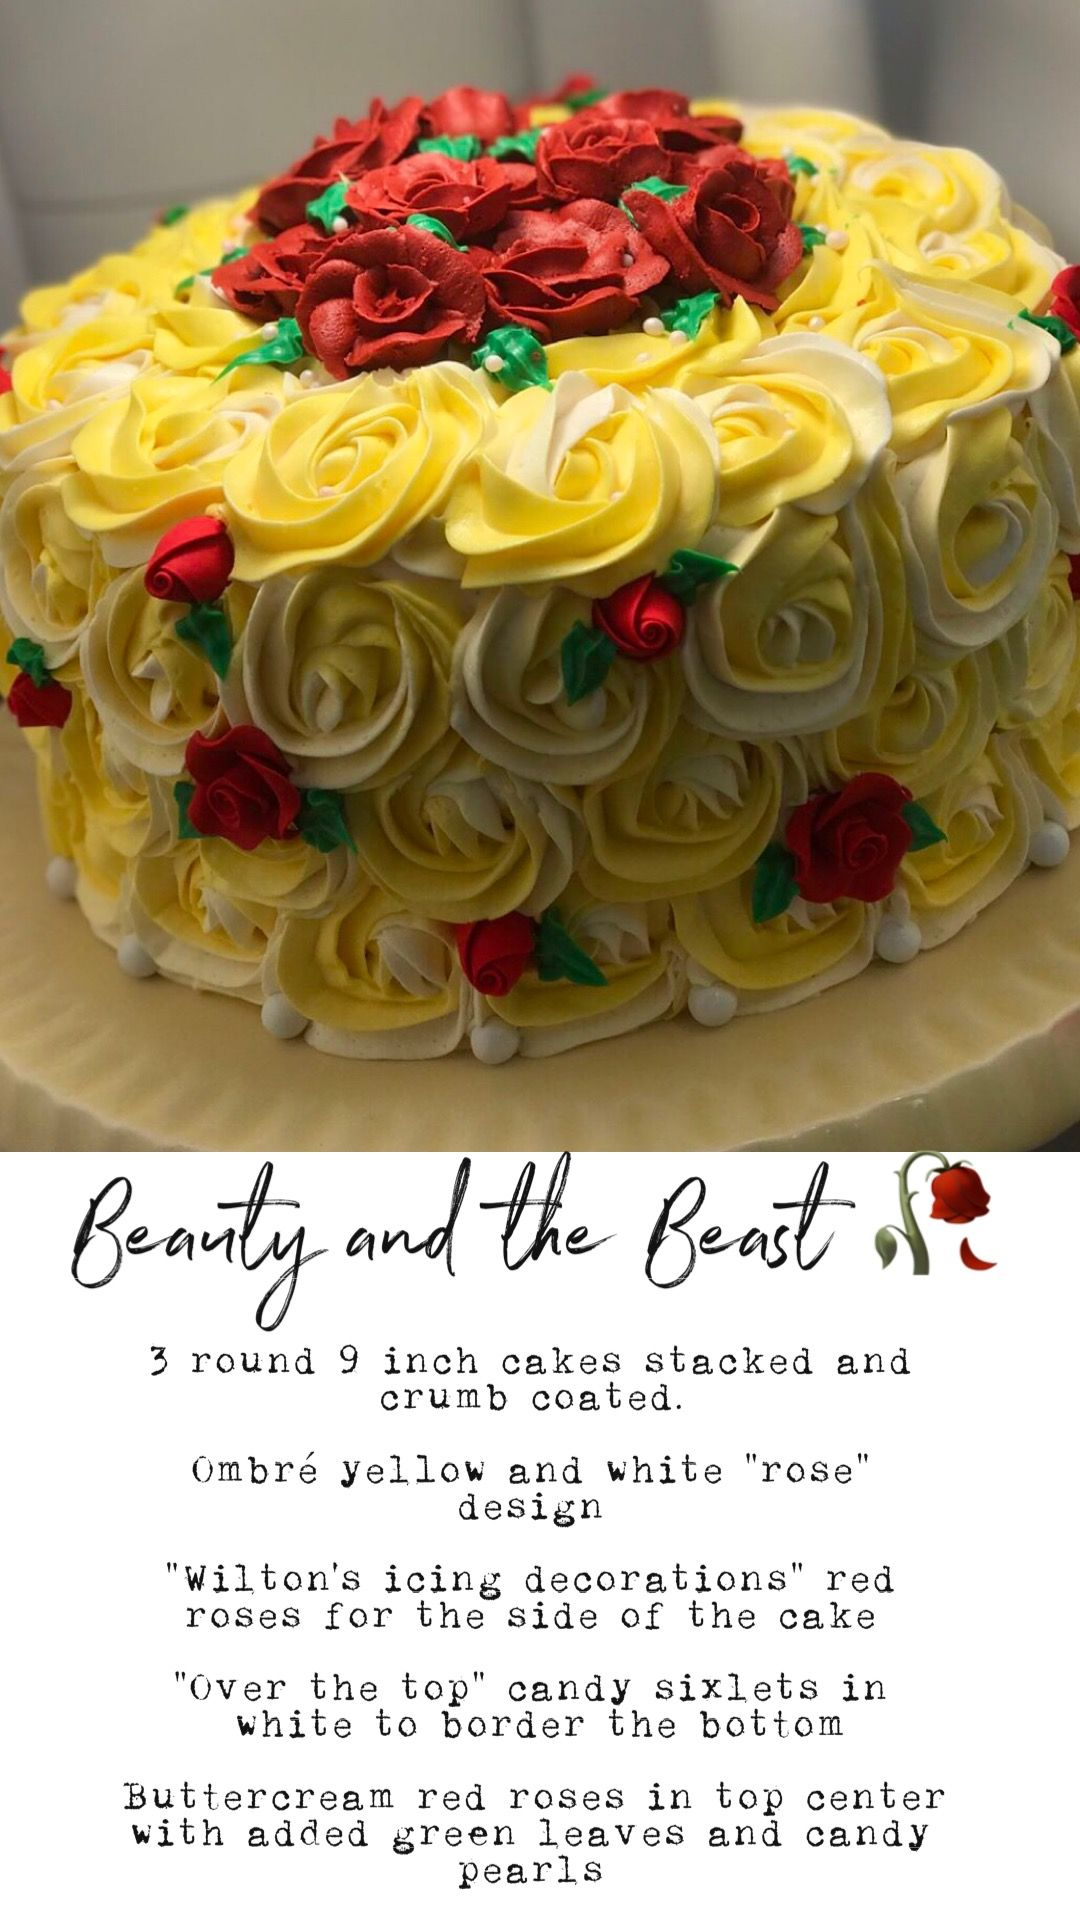 3 Round 9 Inch Cakes Stacked And Crumb Coated Ombre Yellow And